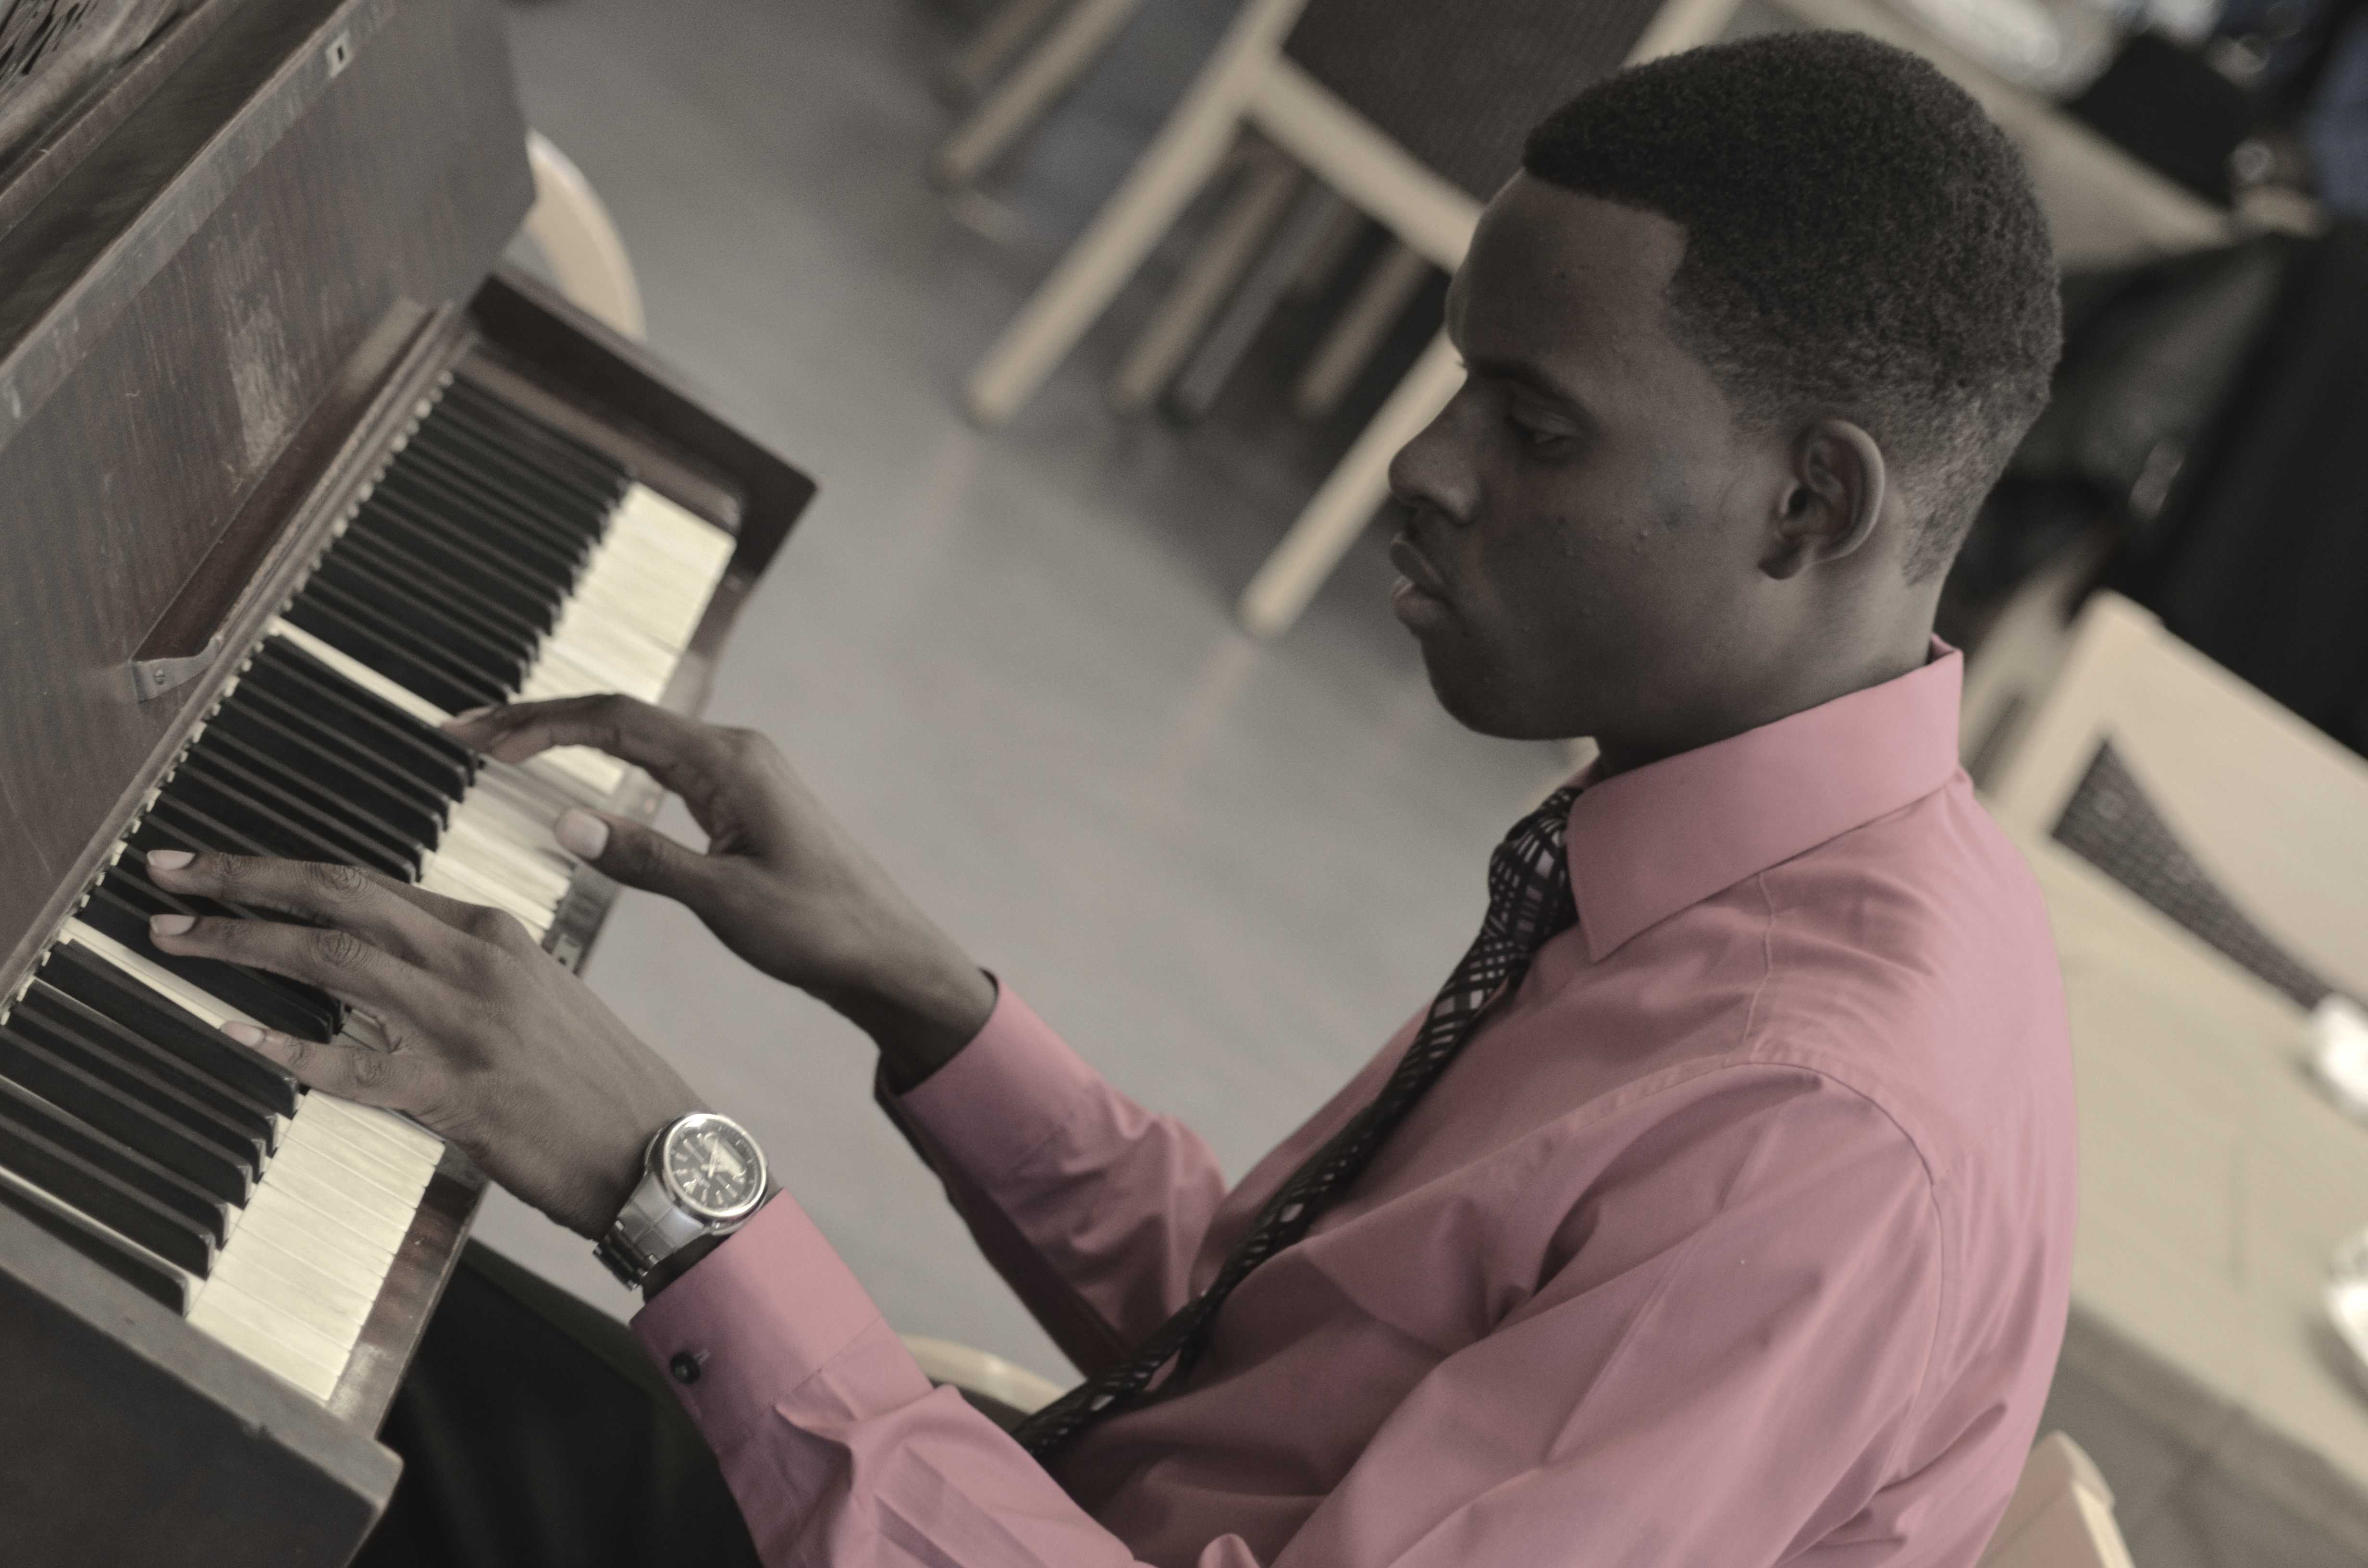 Activity Photography: Serious piano playing